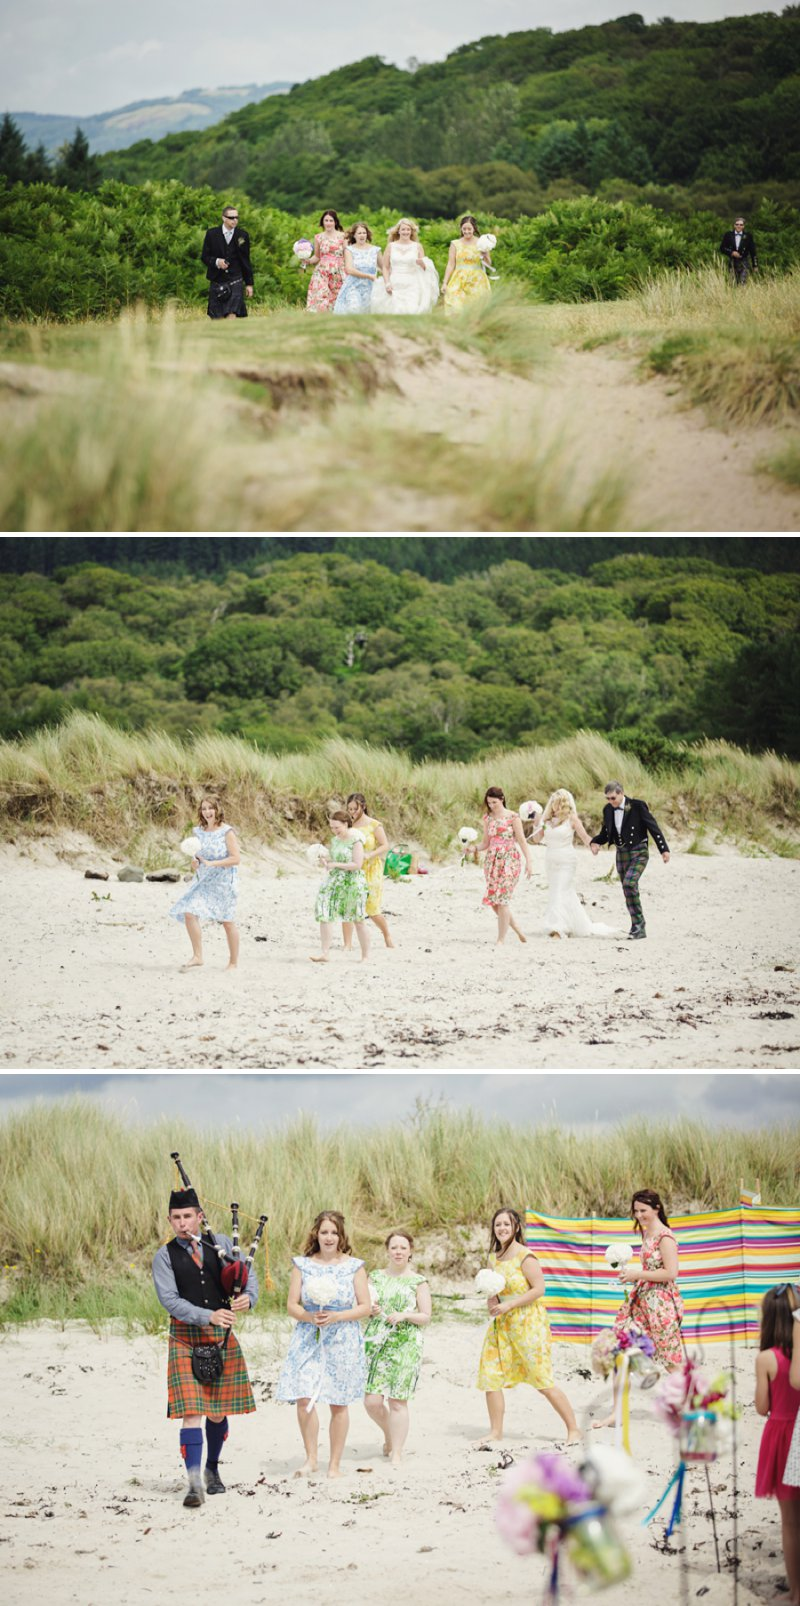 Rustic Scottish Beach Wedding With Bride In Justin Alexander And Vivien Of Holloway And Groom In Kilt With Bridesmaids In 50s Style Gowns With A Traditional Scottish Ceilidh 3